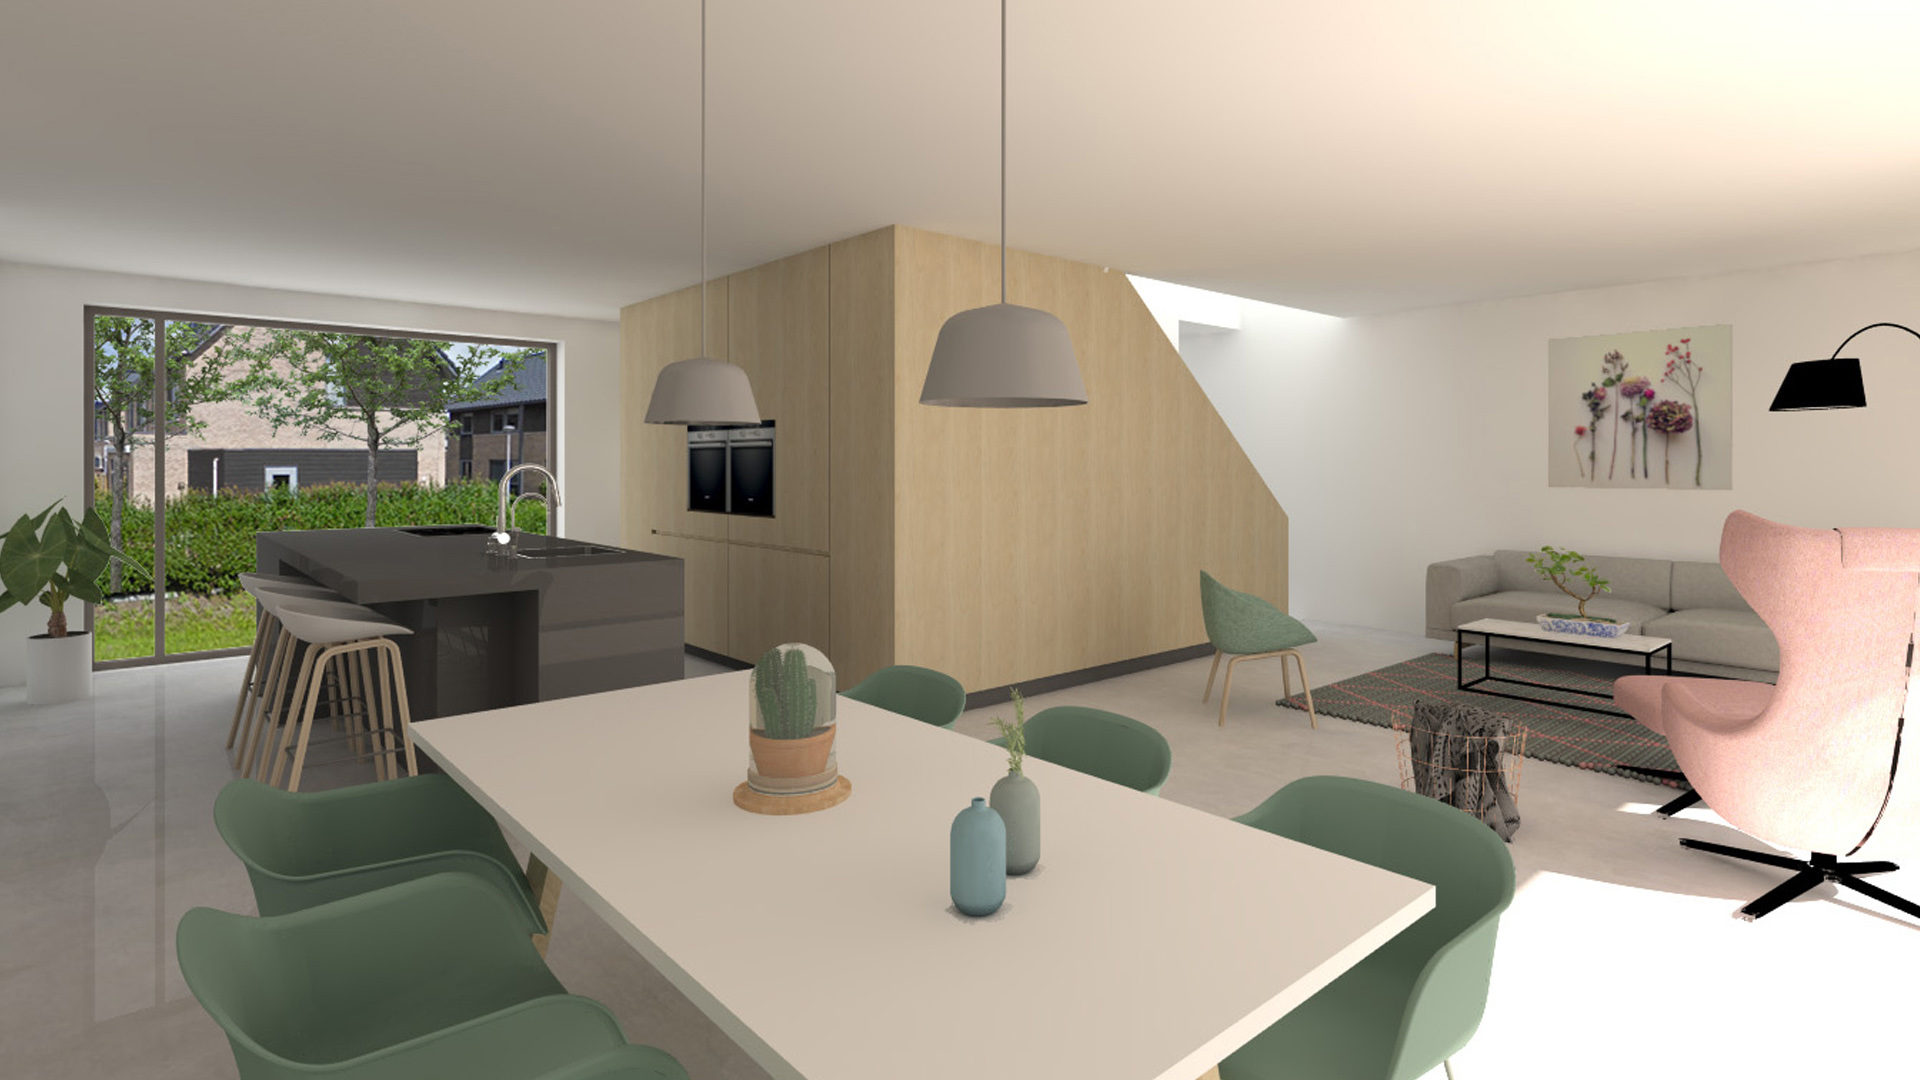 EVA_architecten_Parijsch_interieur2